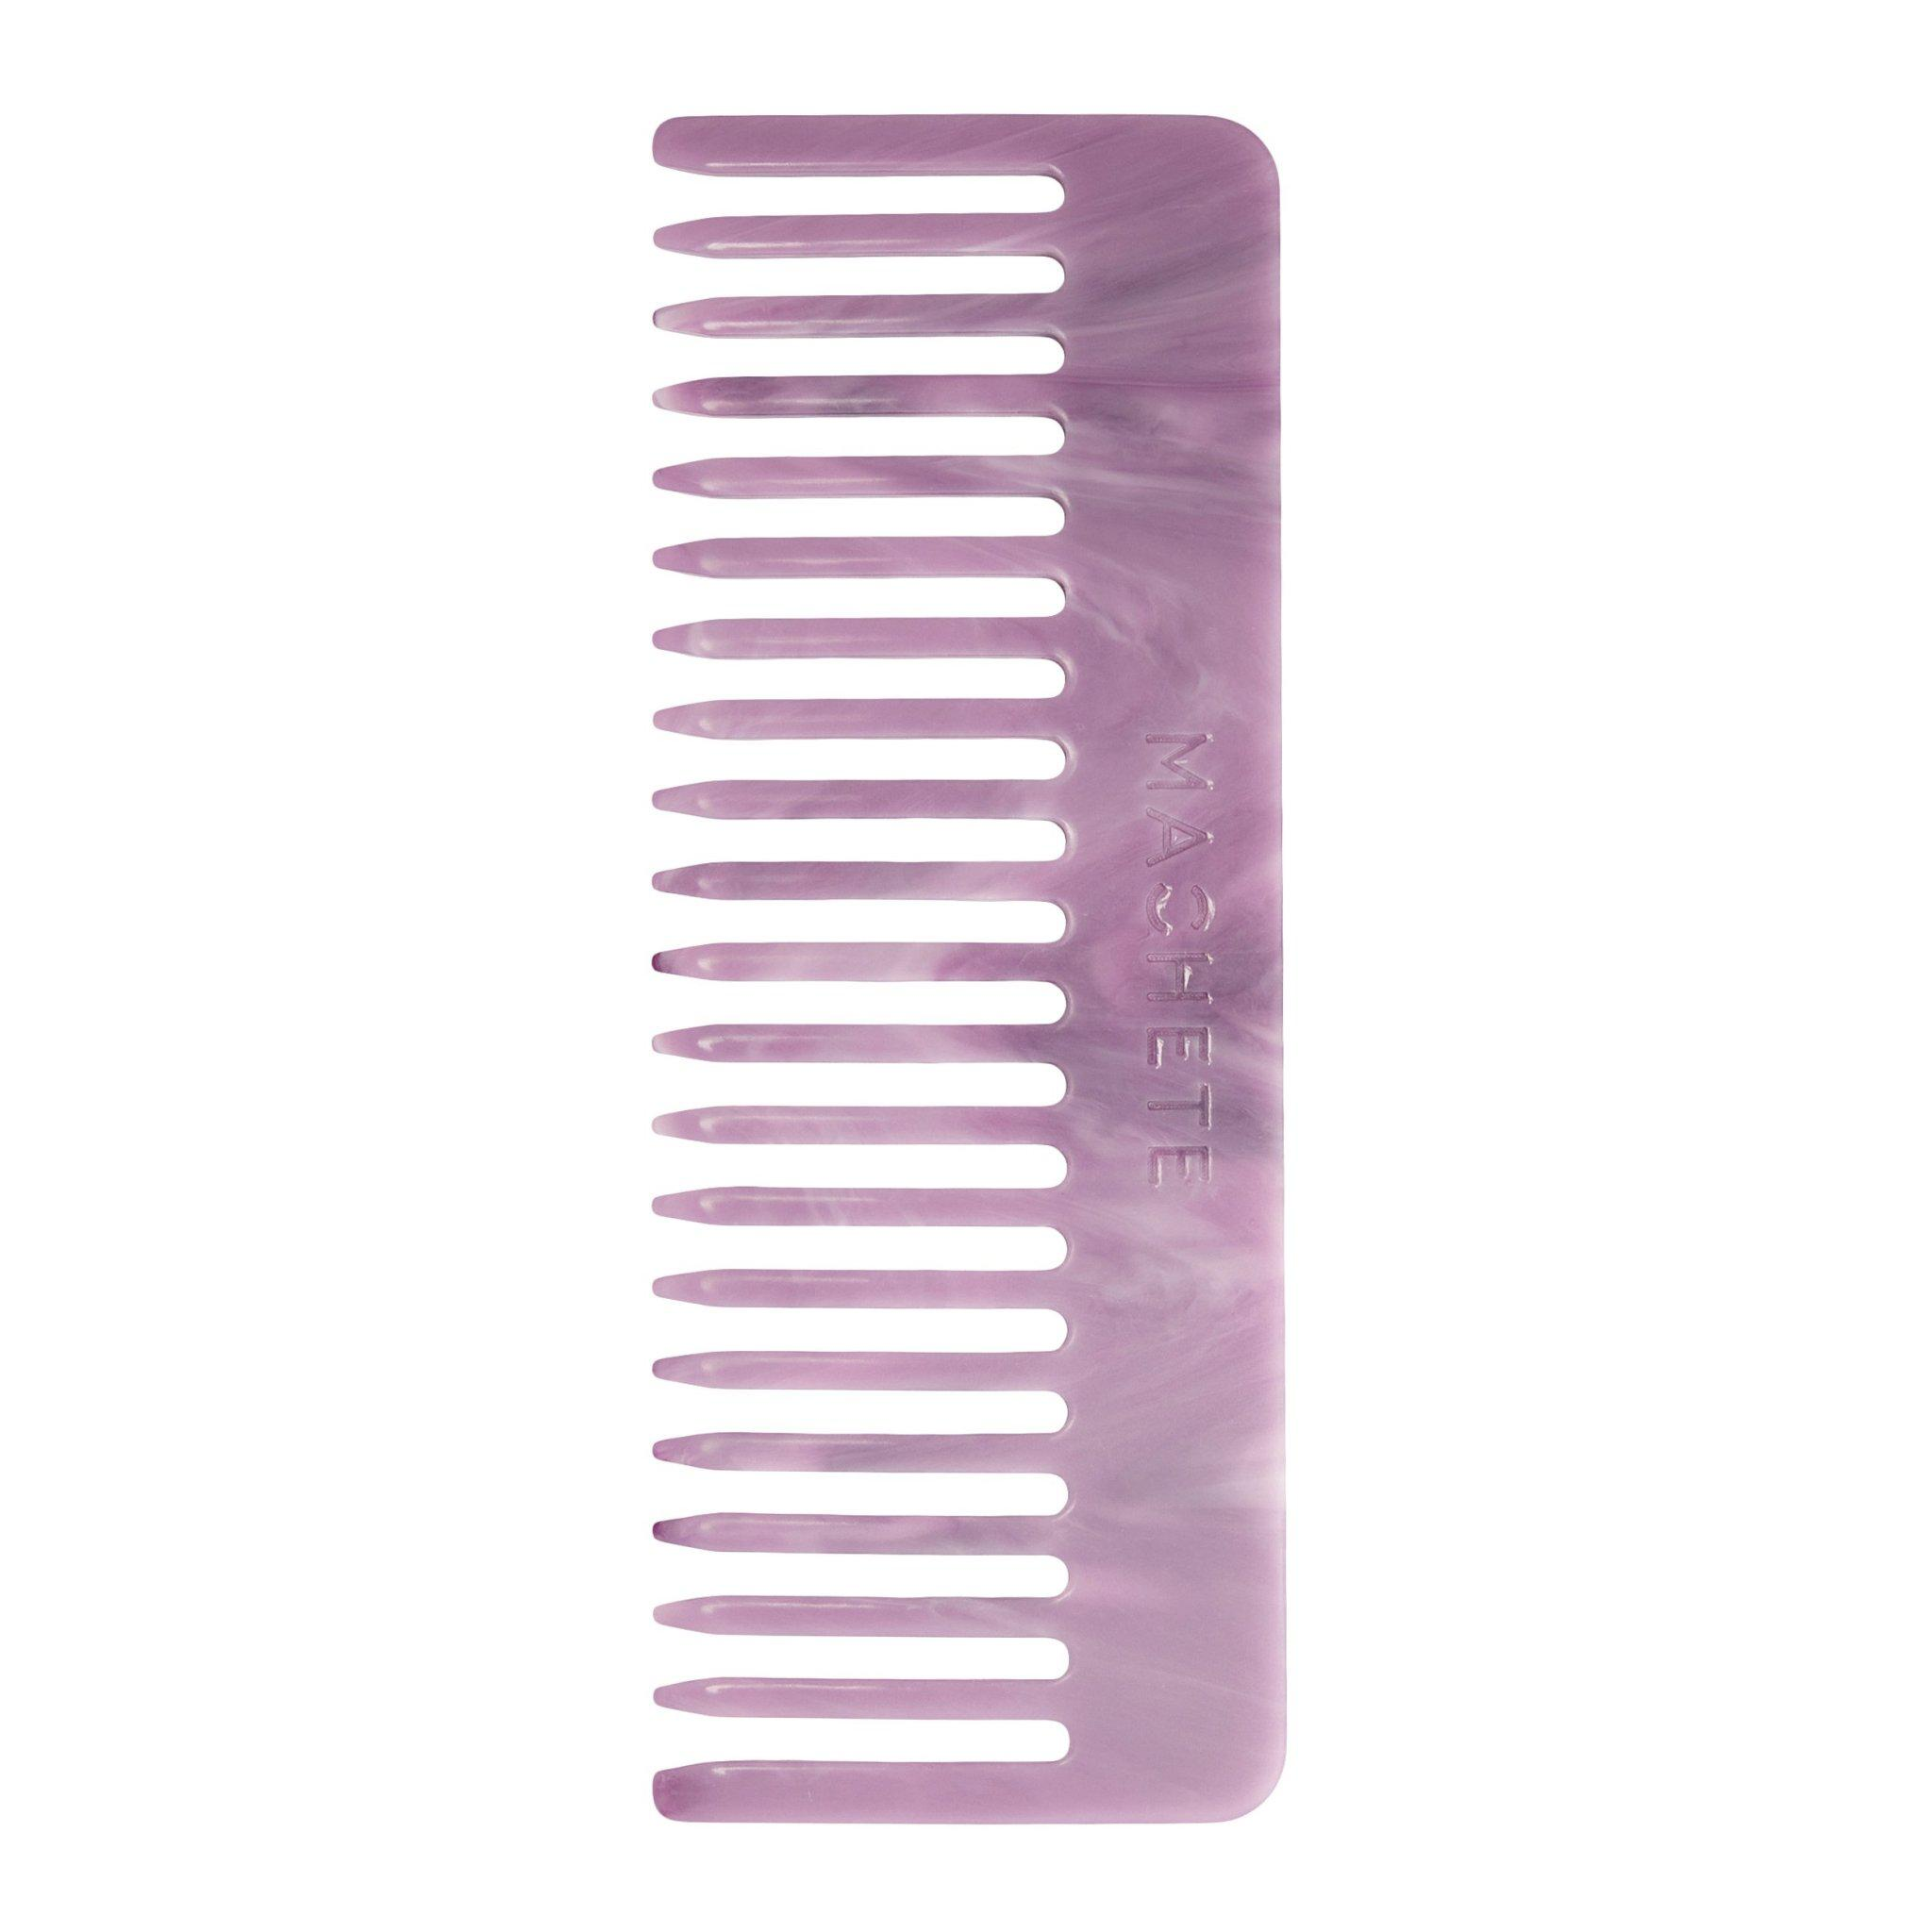 No. 2 Comb in Orchid